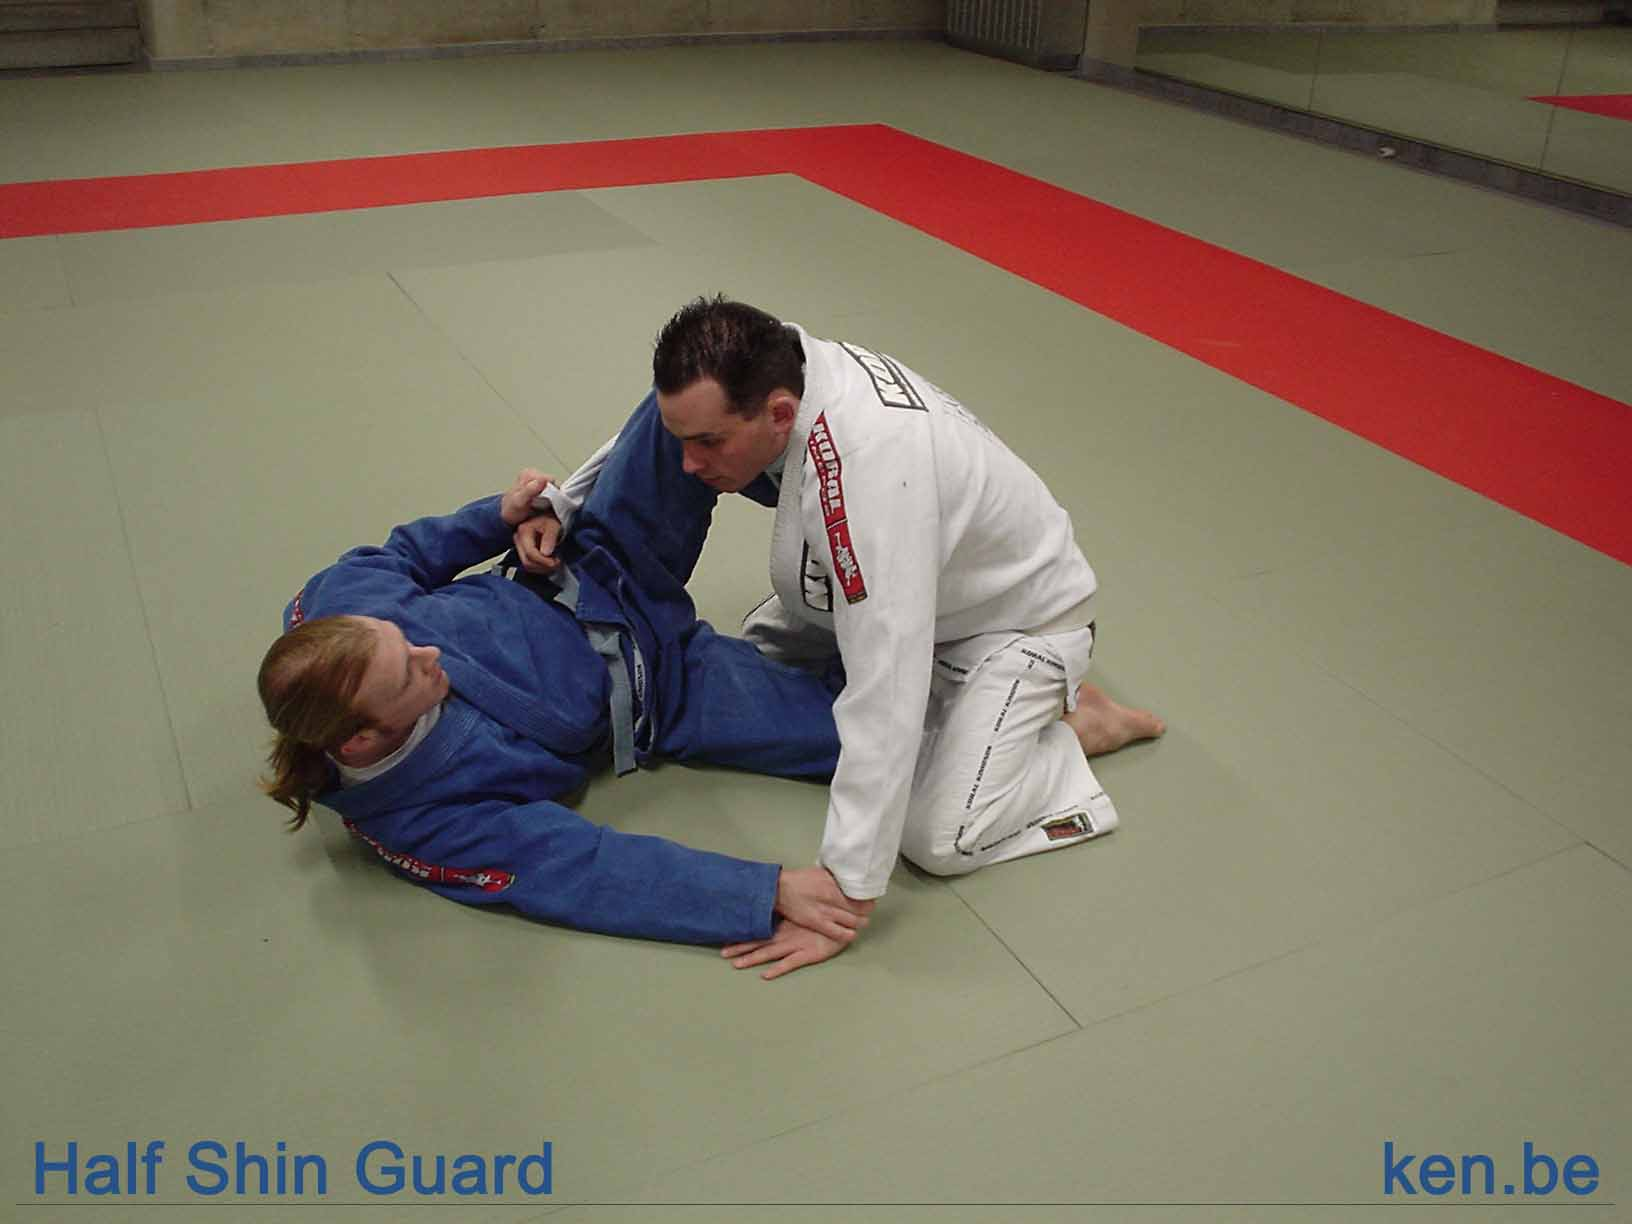 http://www.ken.be/gallery/Vechtsporten/Technieken/Ground%20Positions/half_shin_guard.jpg